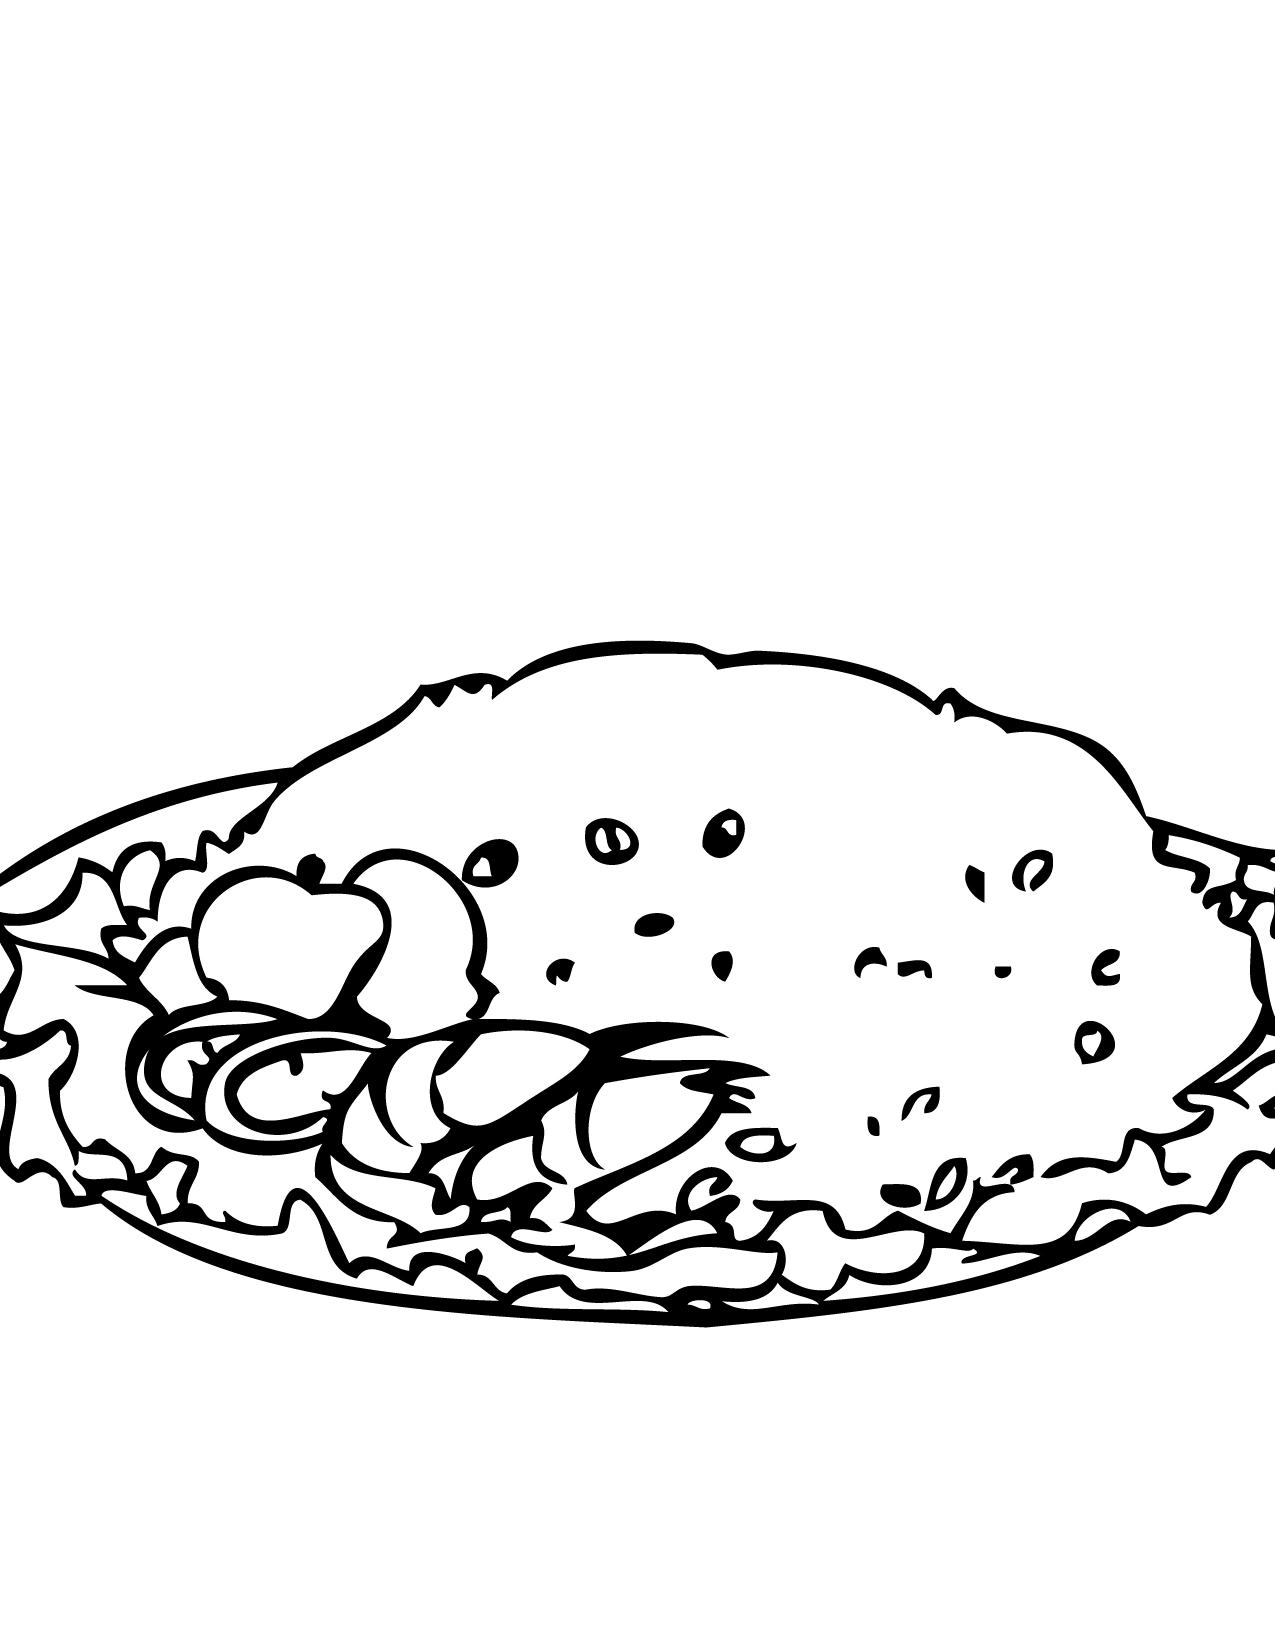 Rice clipart coloring page, Rice coloring page Transparent